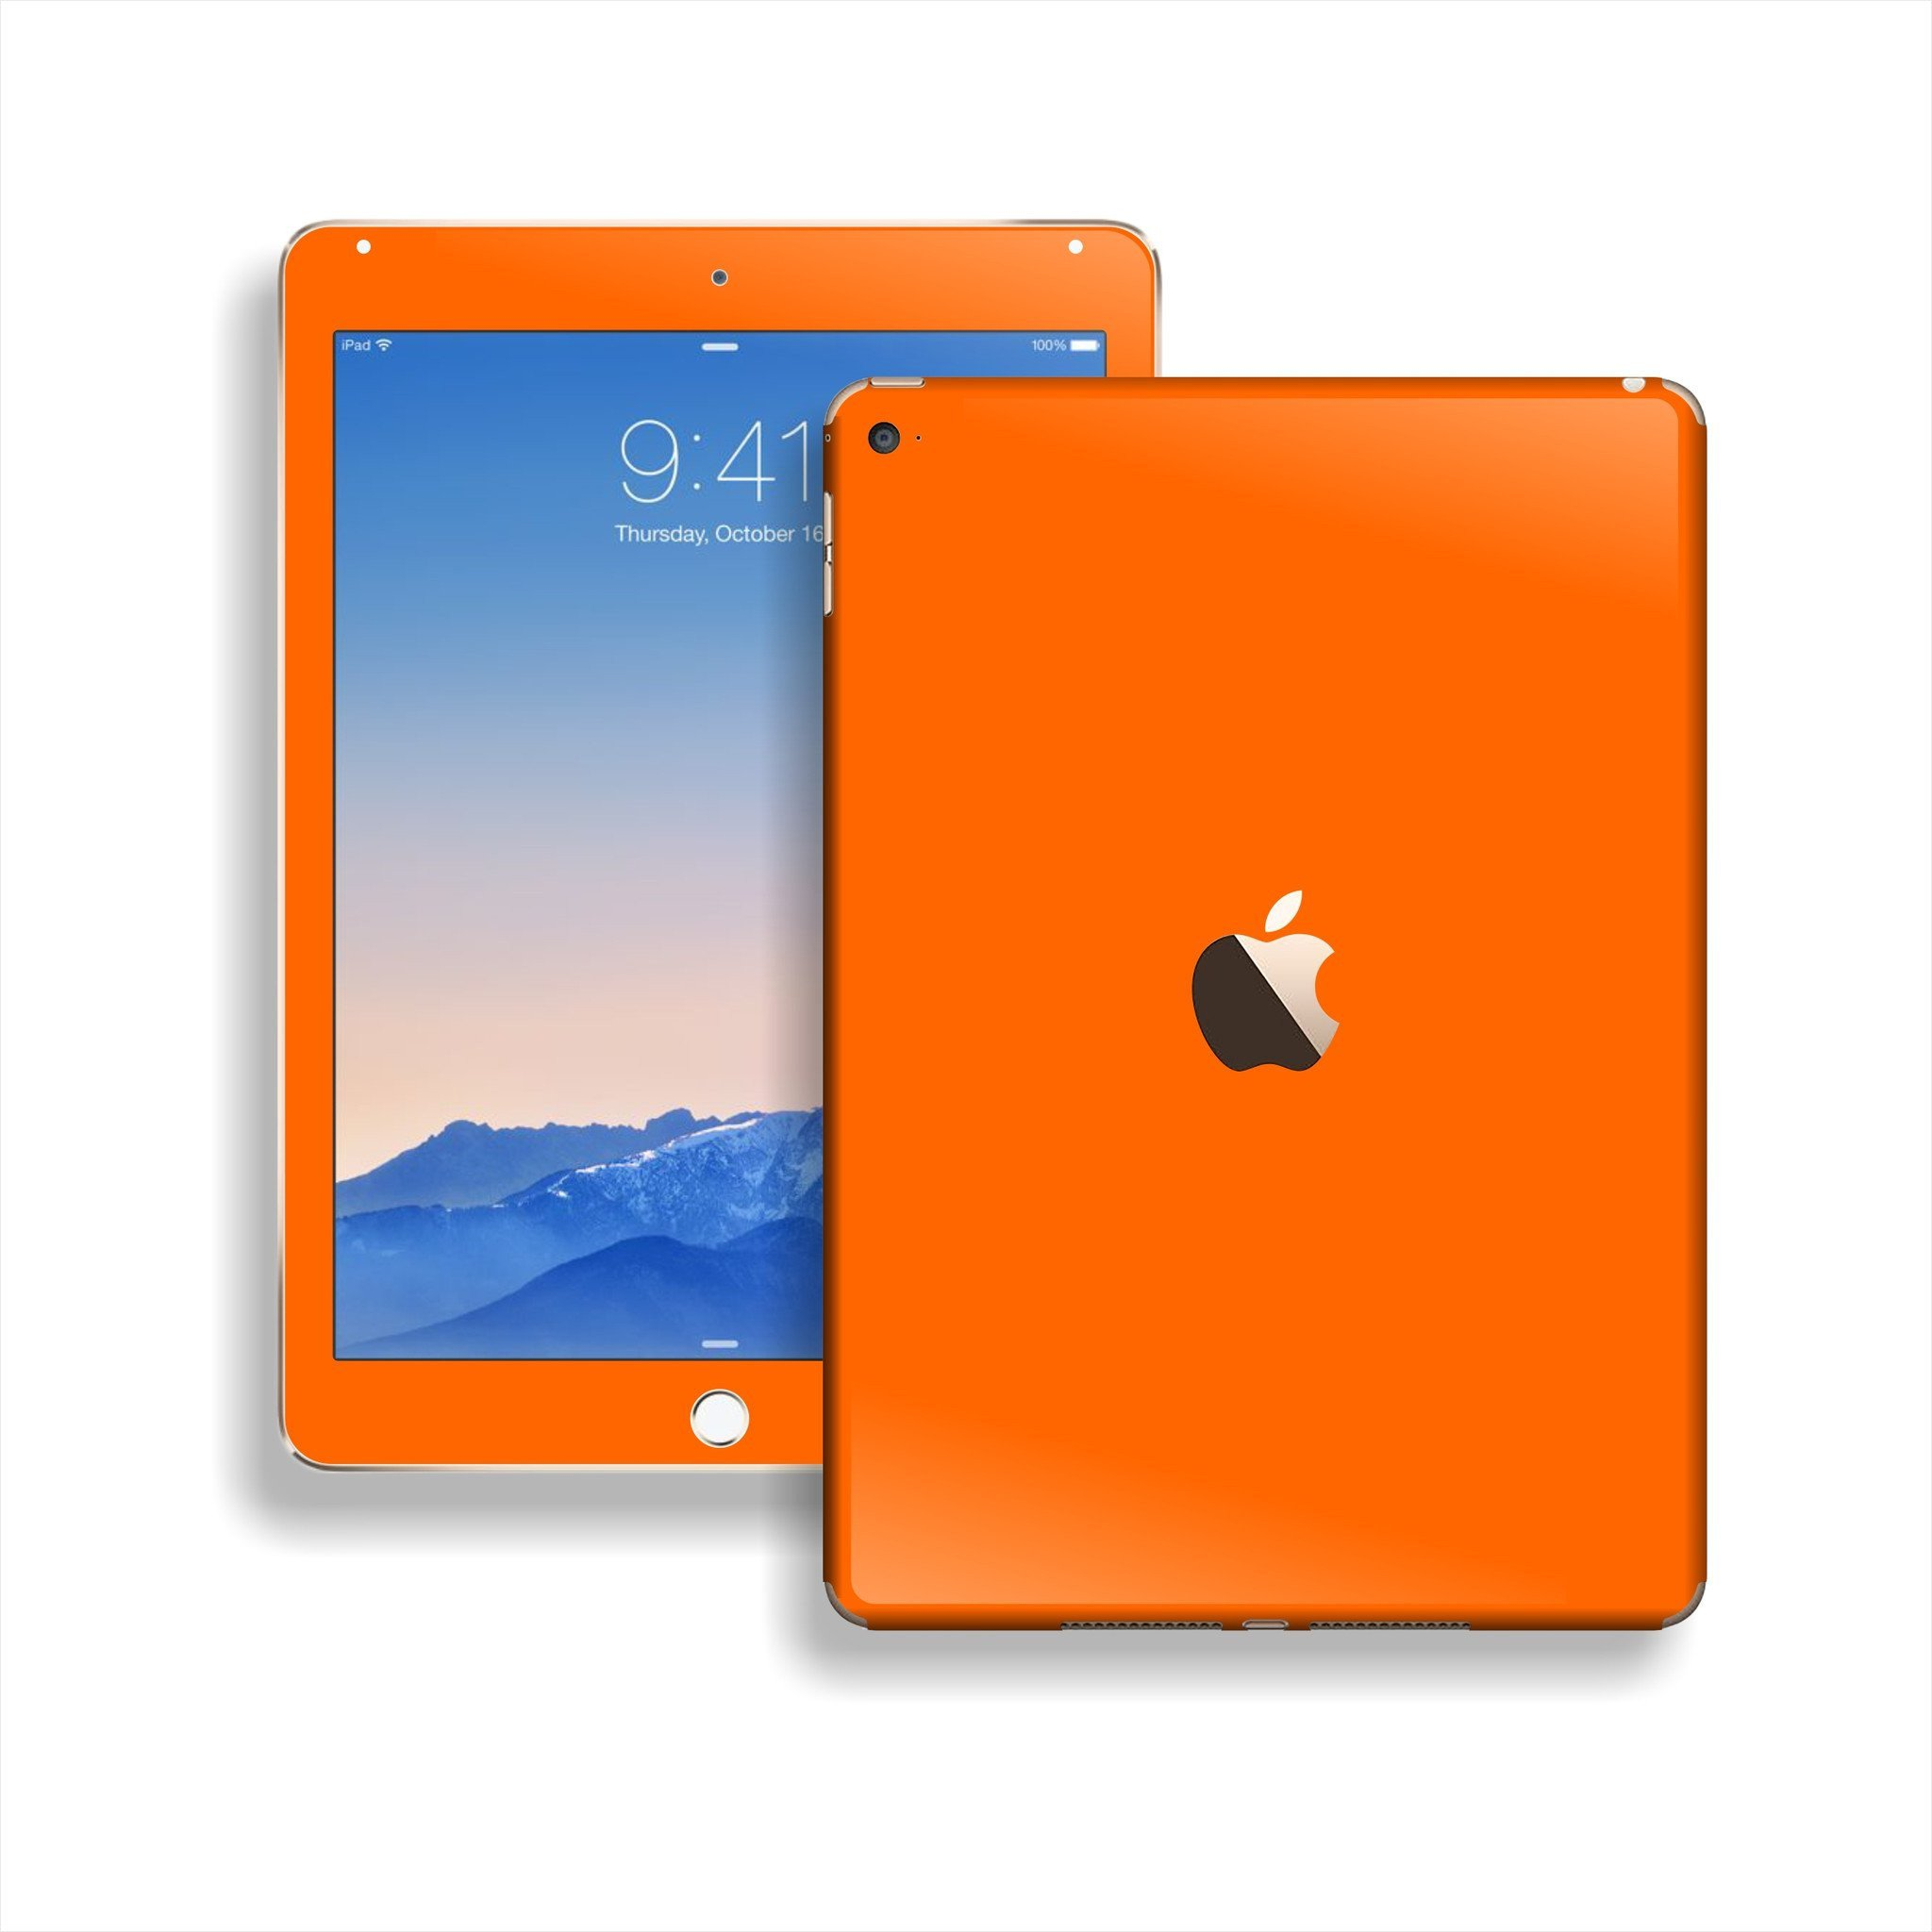 iPad Air 2 Orange Matt Matte Skin Wrap Sticker Decal Cover Protector by EasySkinz